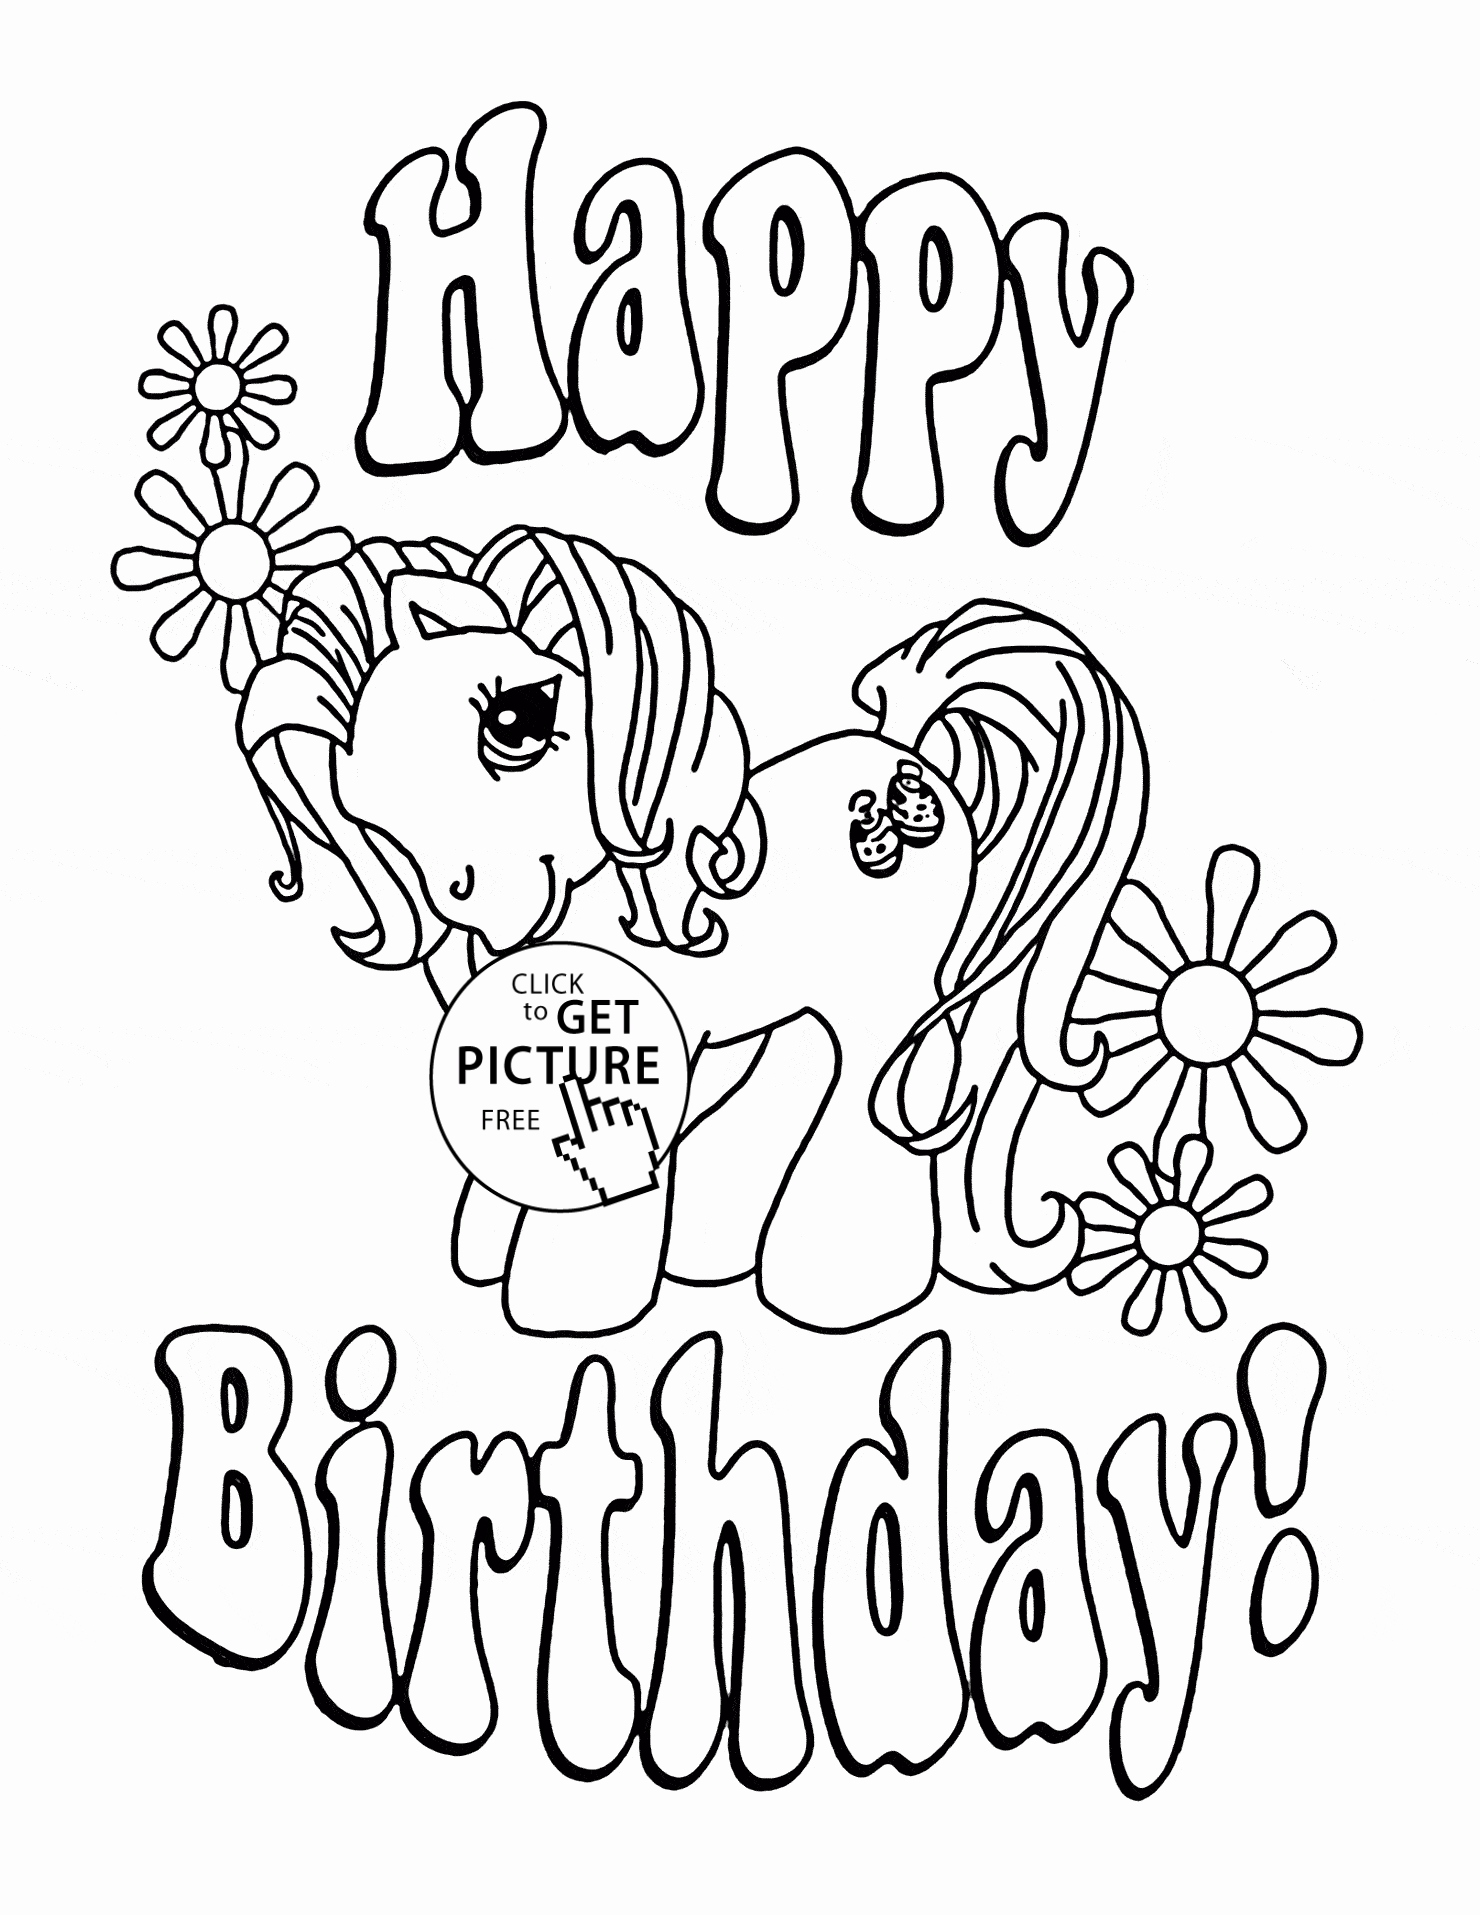 Happy Birthday Sister Coloring Pages At Getcolorings